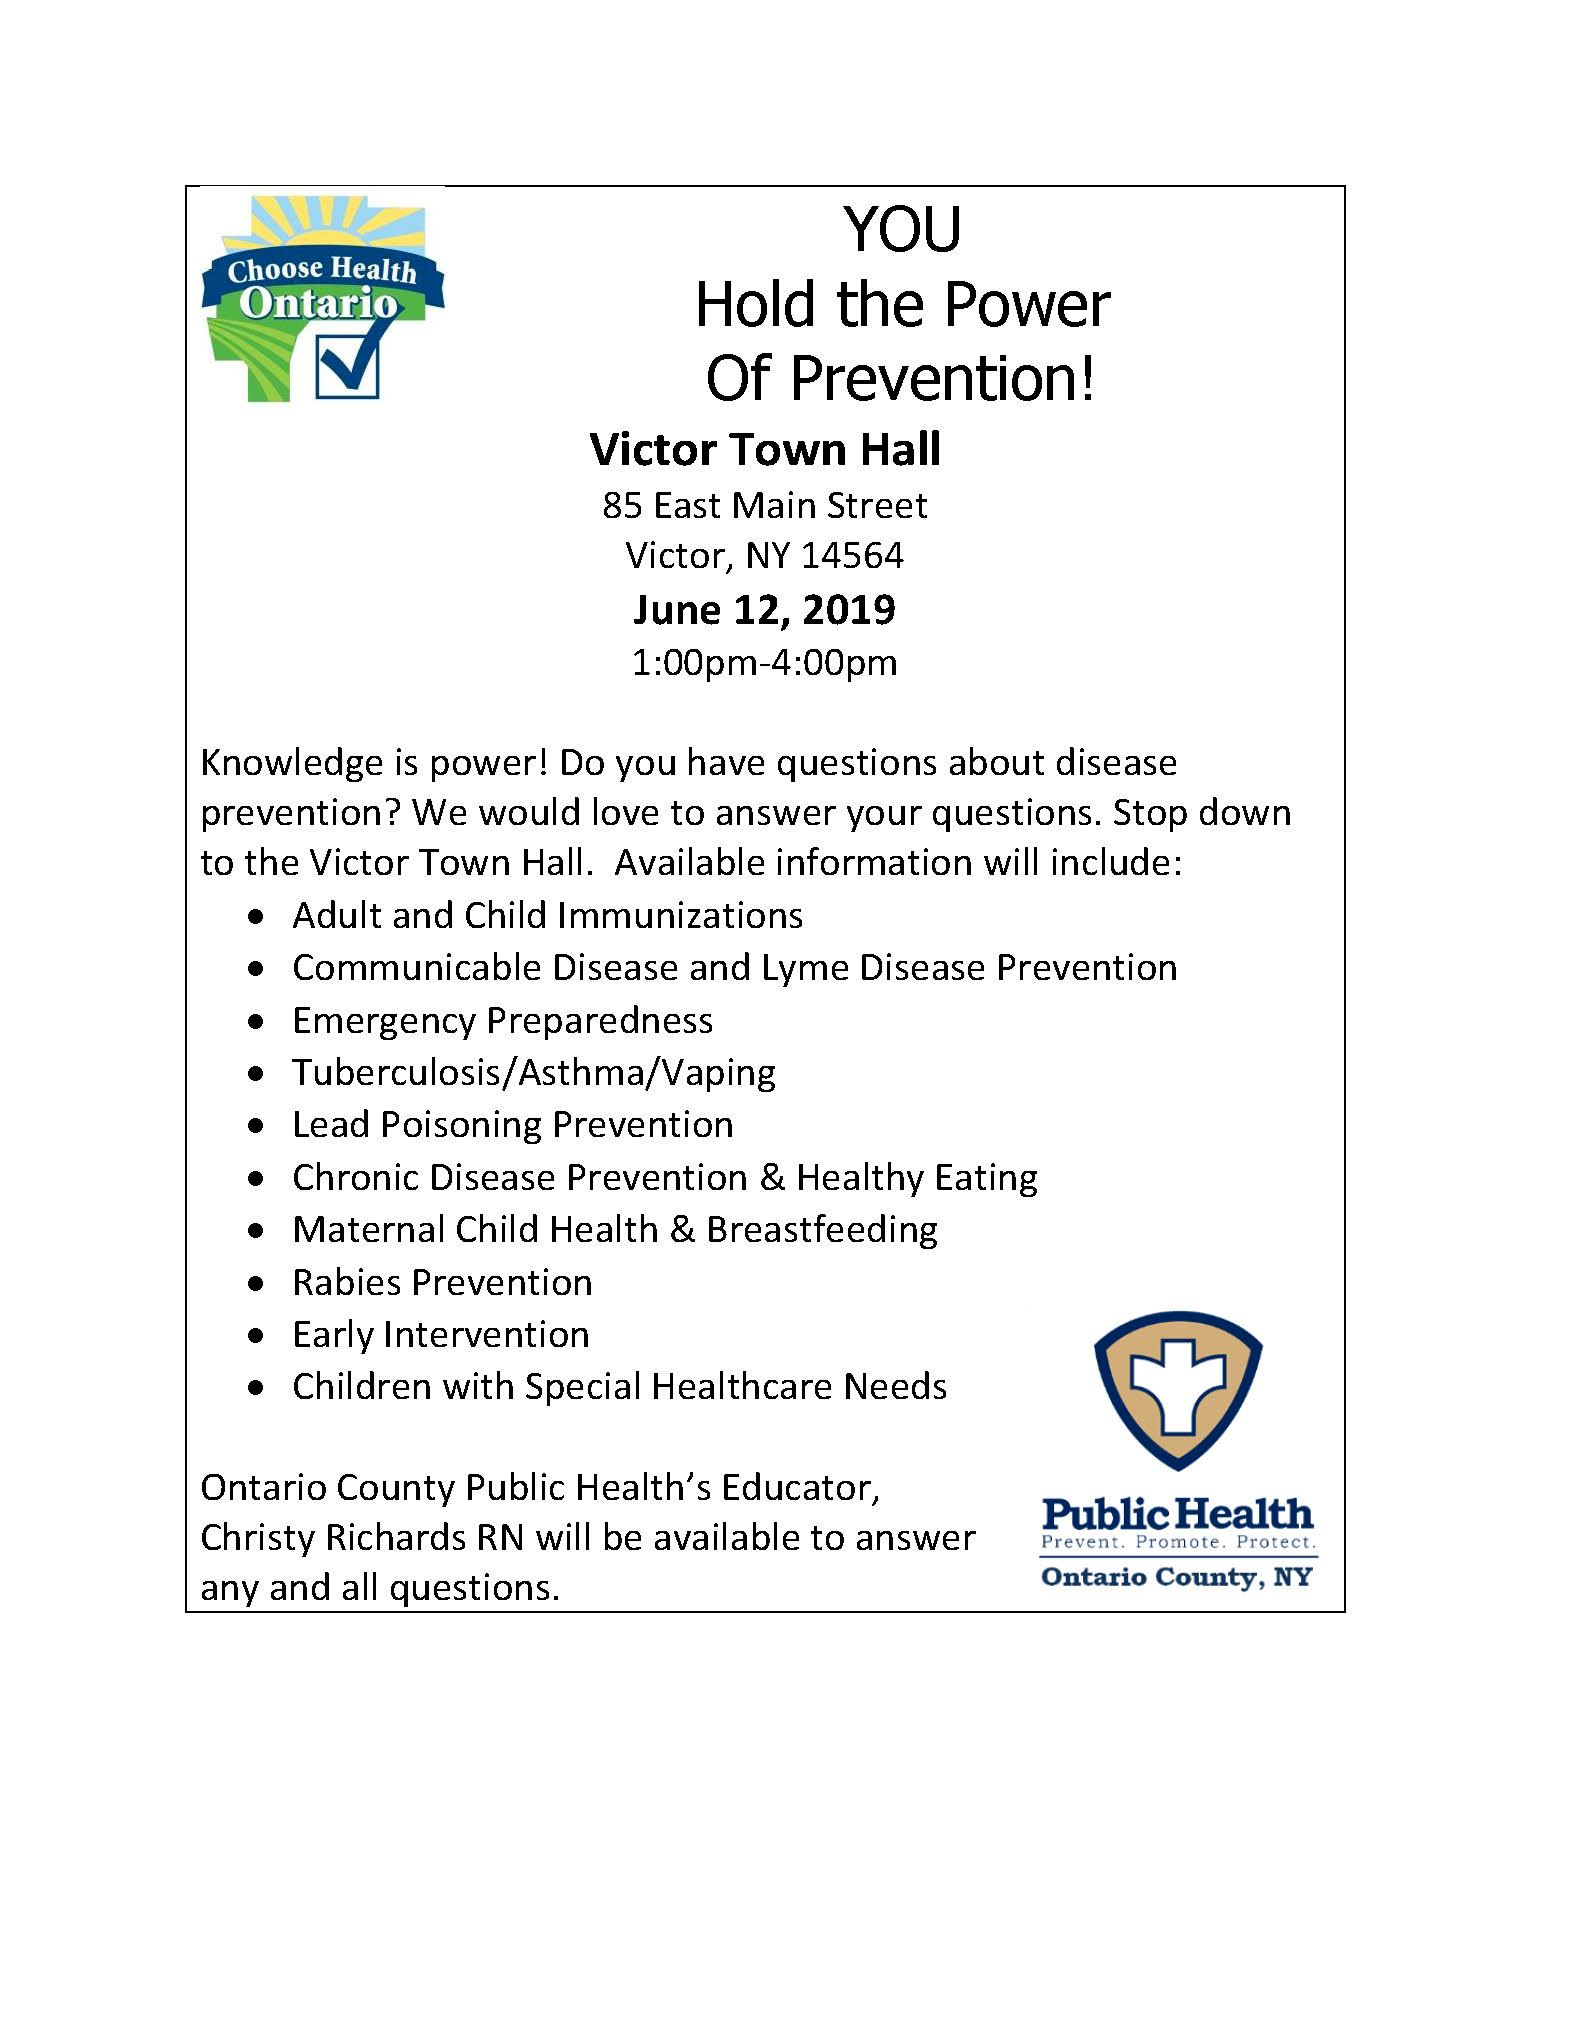 You Hold the Power of Prevention flyer 06122019